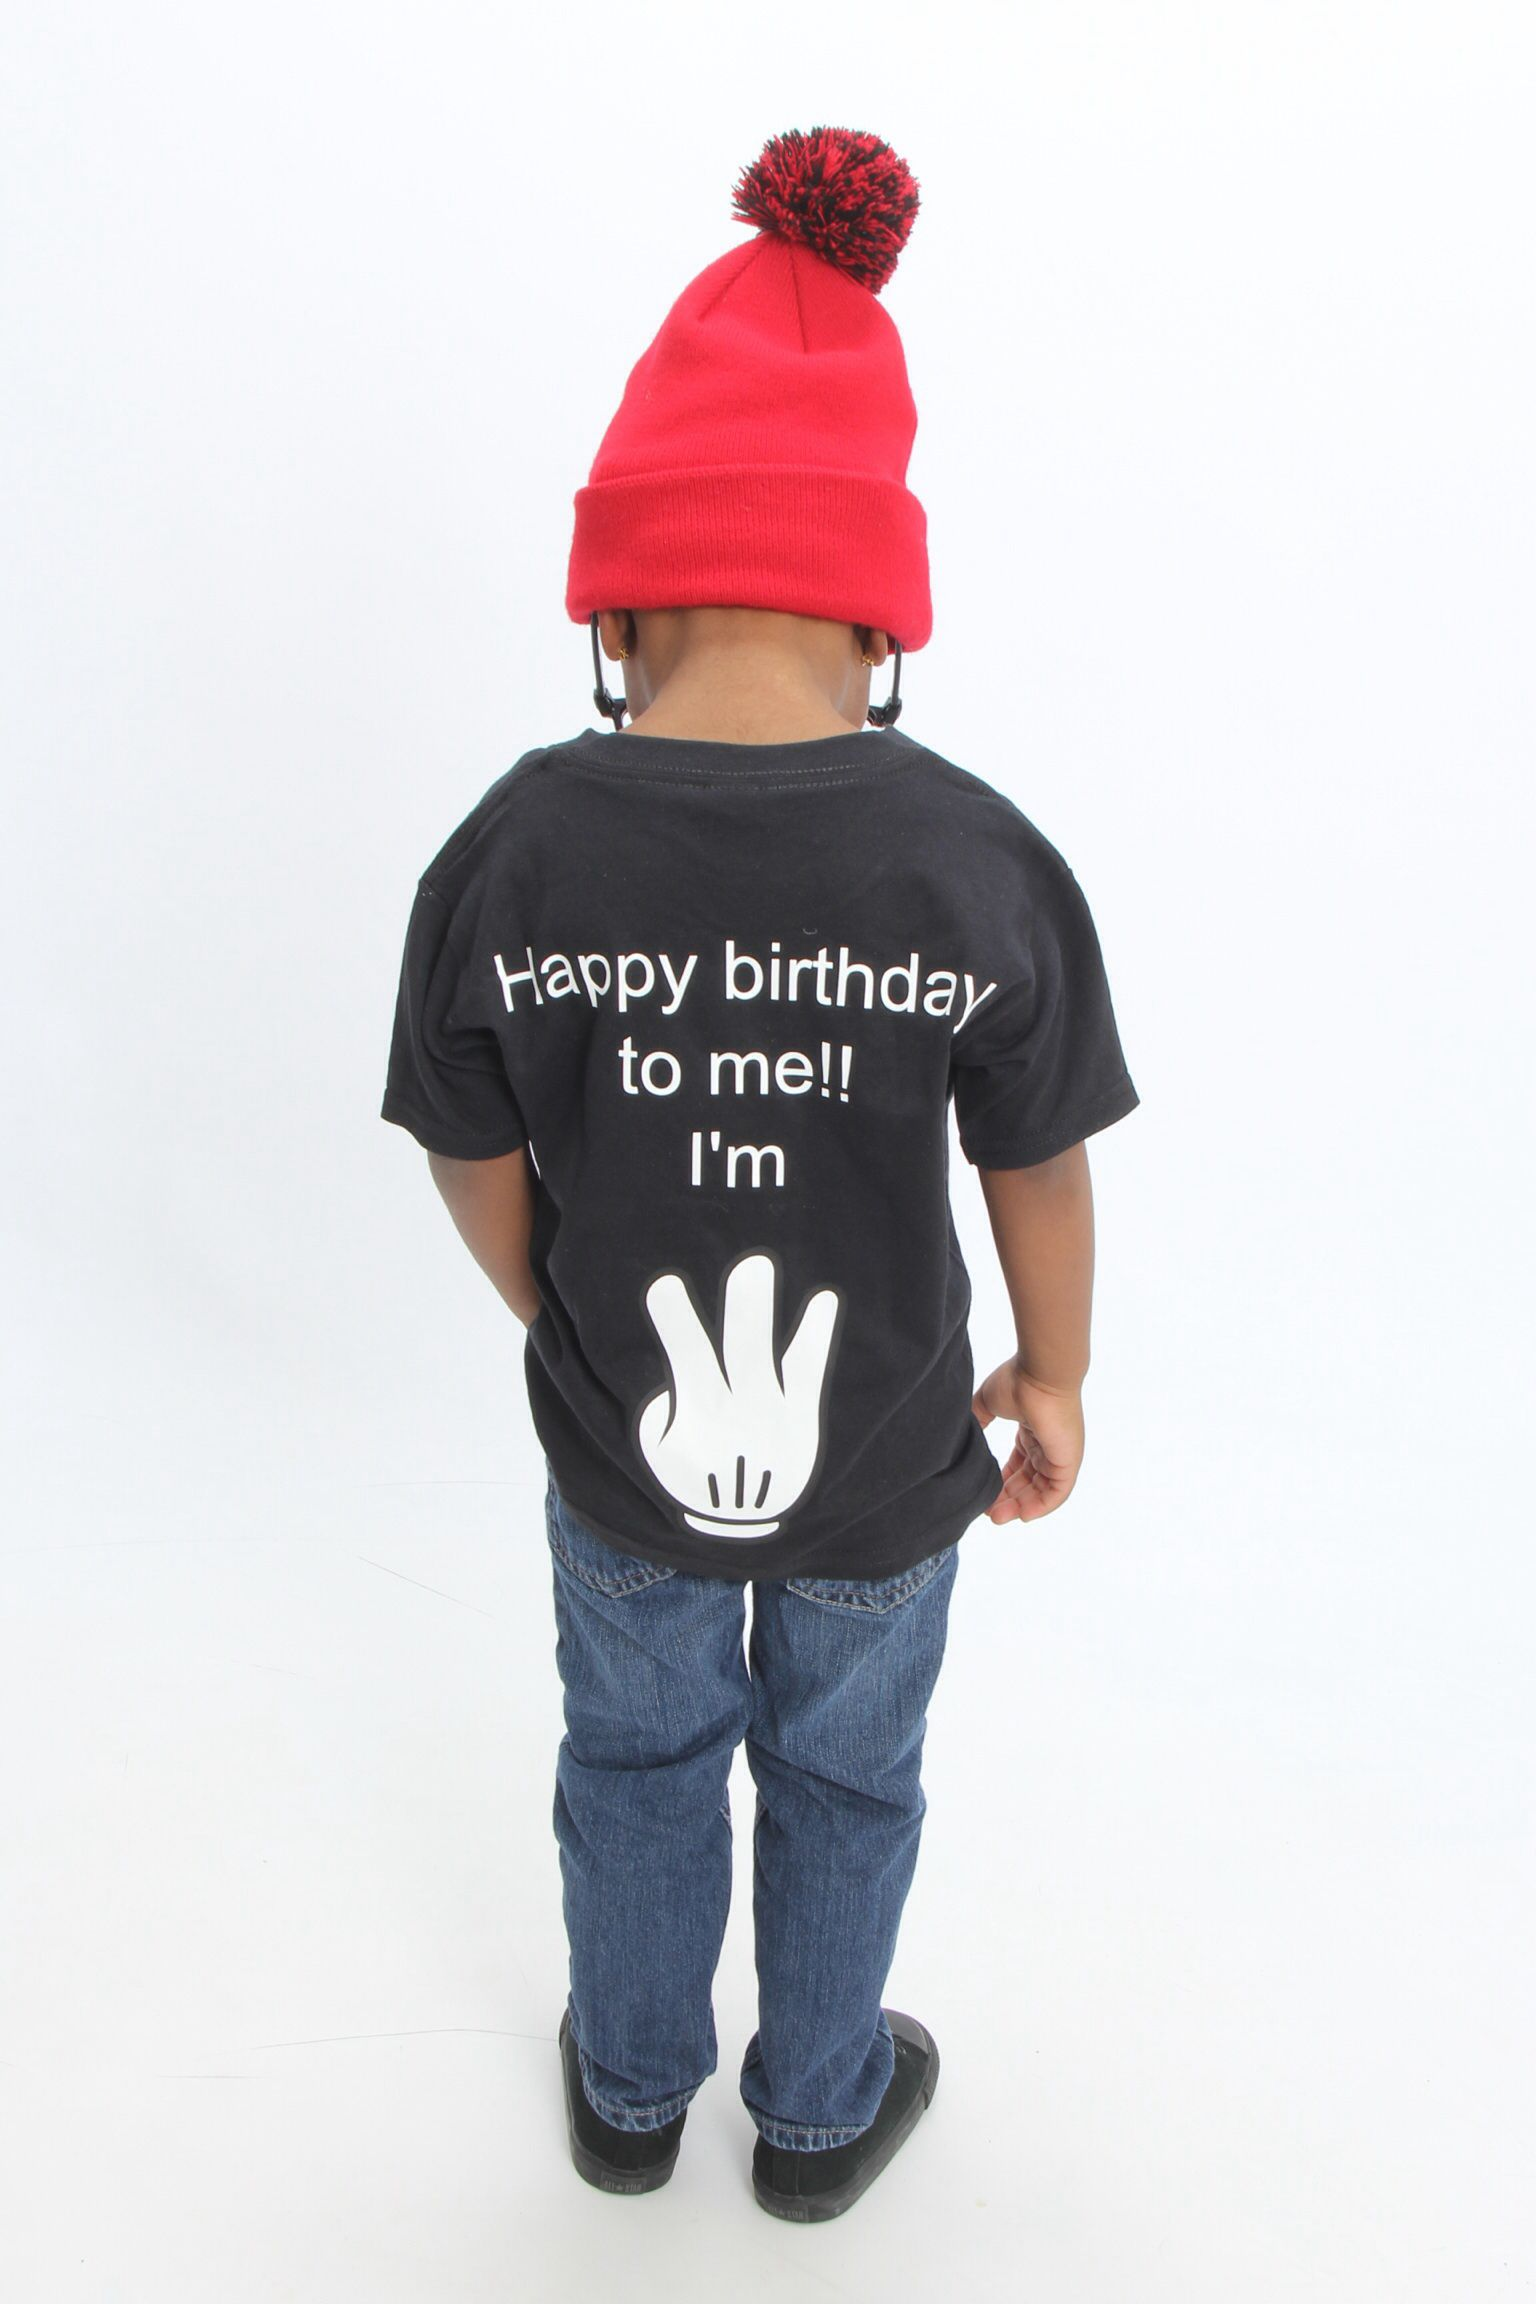 Kids Fashion My Son 3 Year Old Bday Photoshoot Happy Birthday To Me Im Designed By